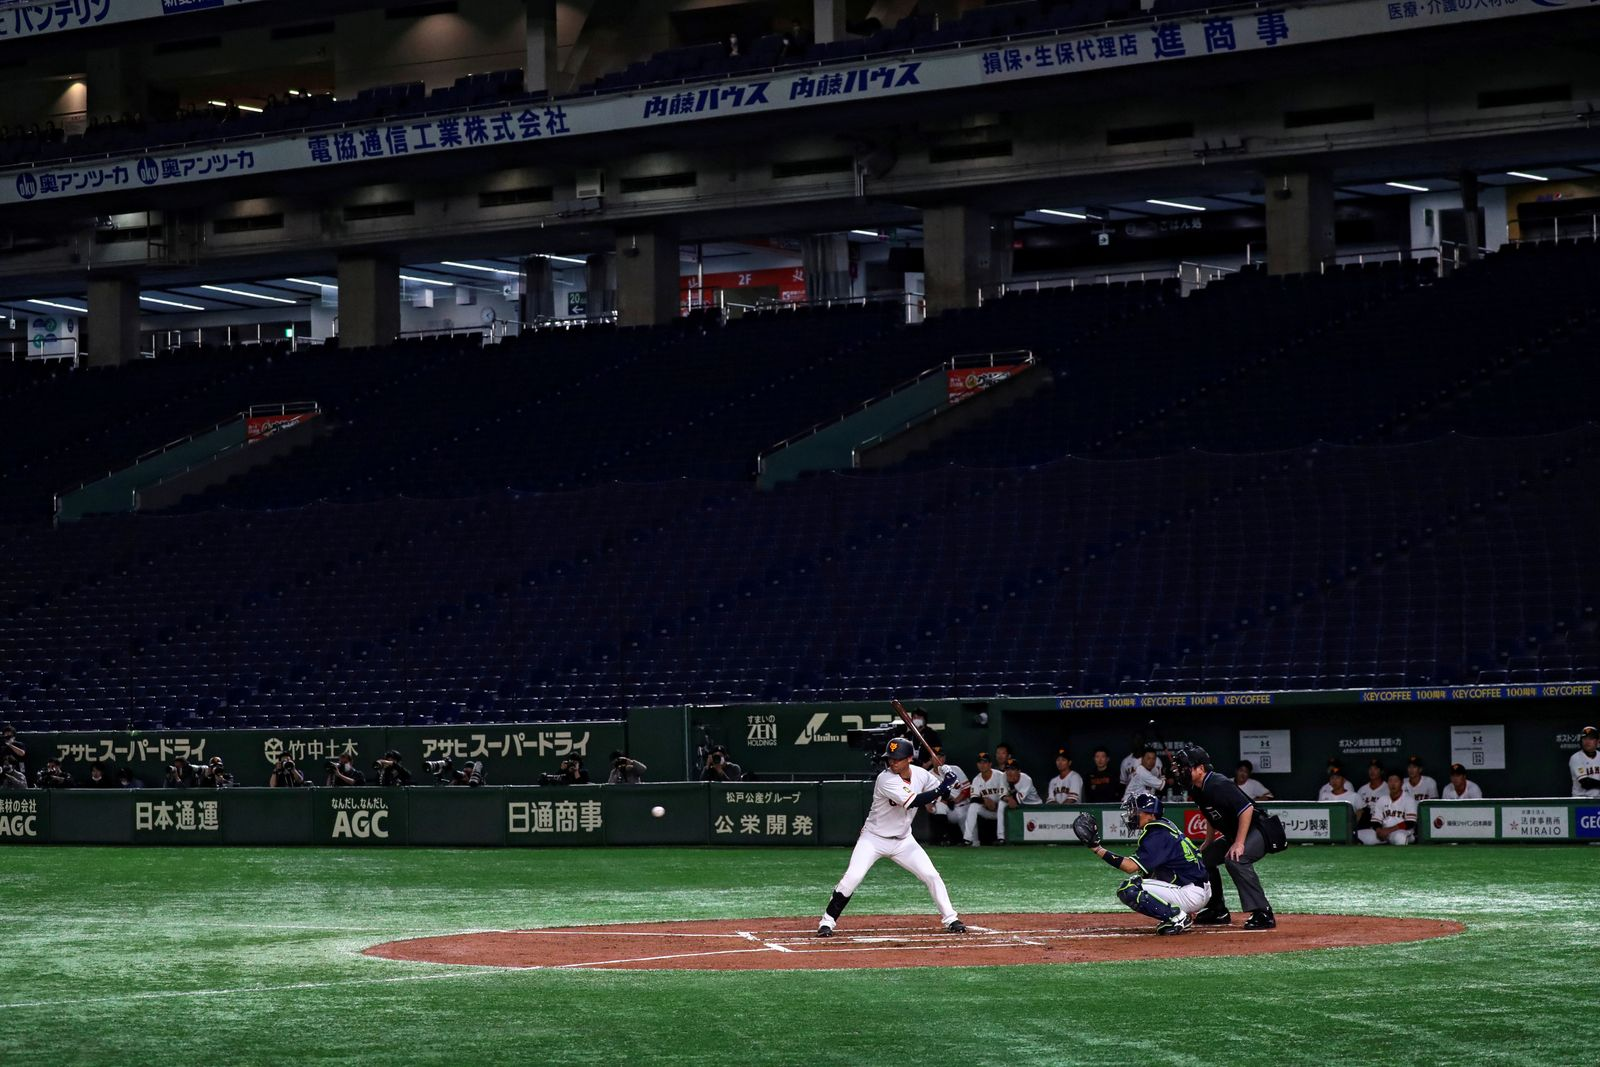 Spectator's stands are seen empty during the preseason of the baseball game of Yomiuri Giants and Tokyo Yakult Swallows, which is taking place behind closed doors amid the spread of the new coronavirus, at the Tokyo Dome in Tokyo